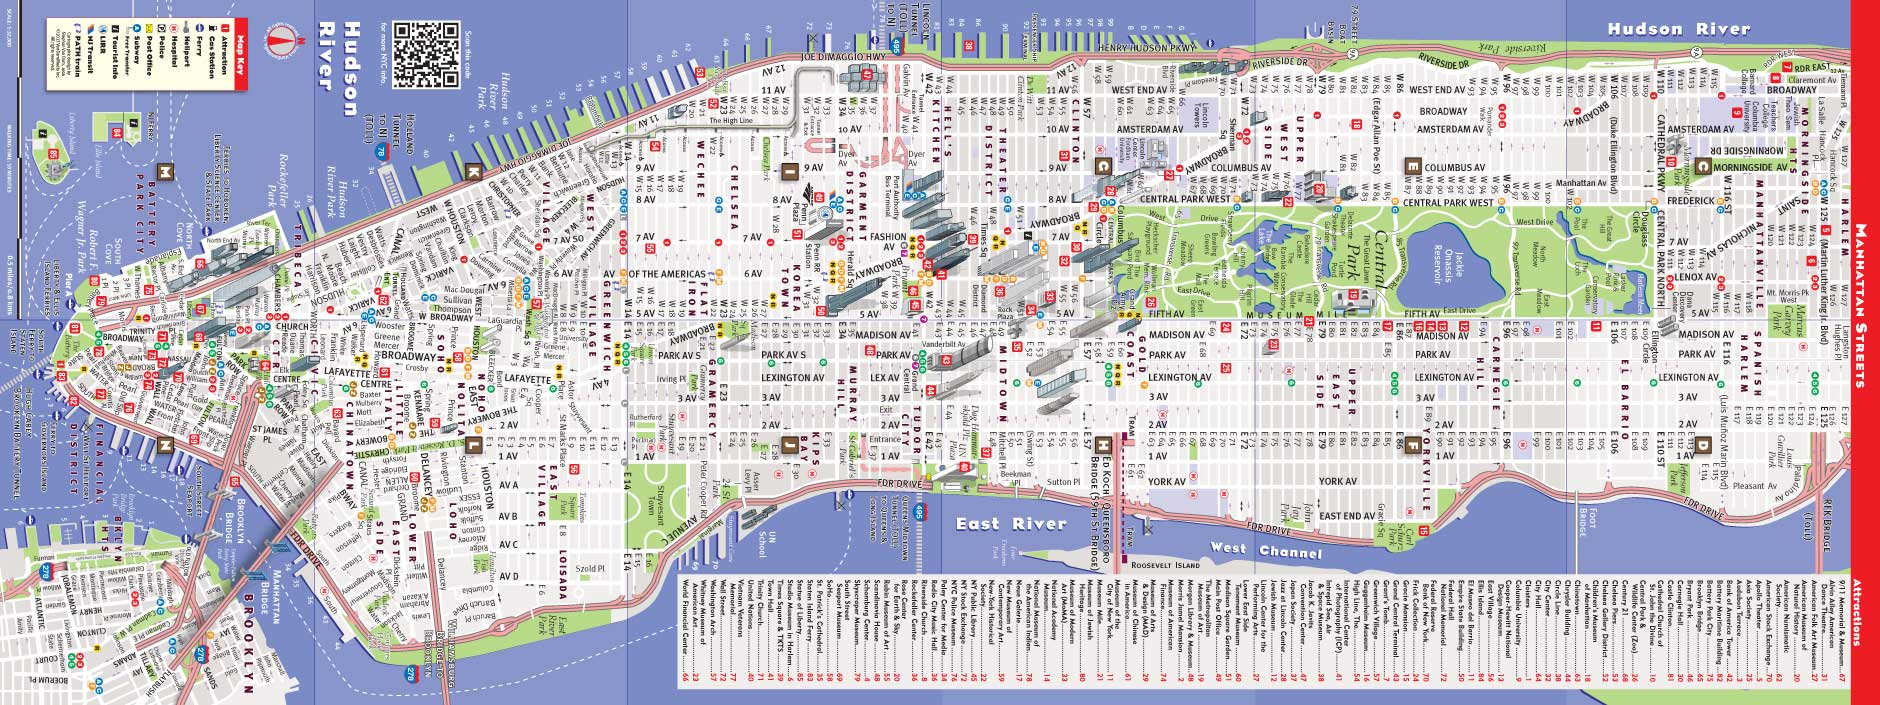 streetsmart new york city map click map to magnify